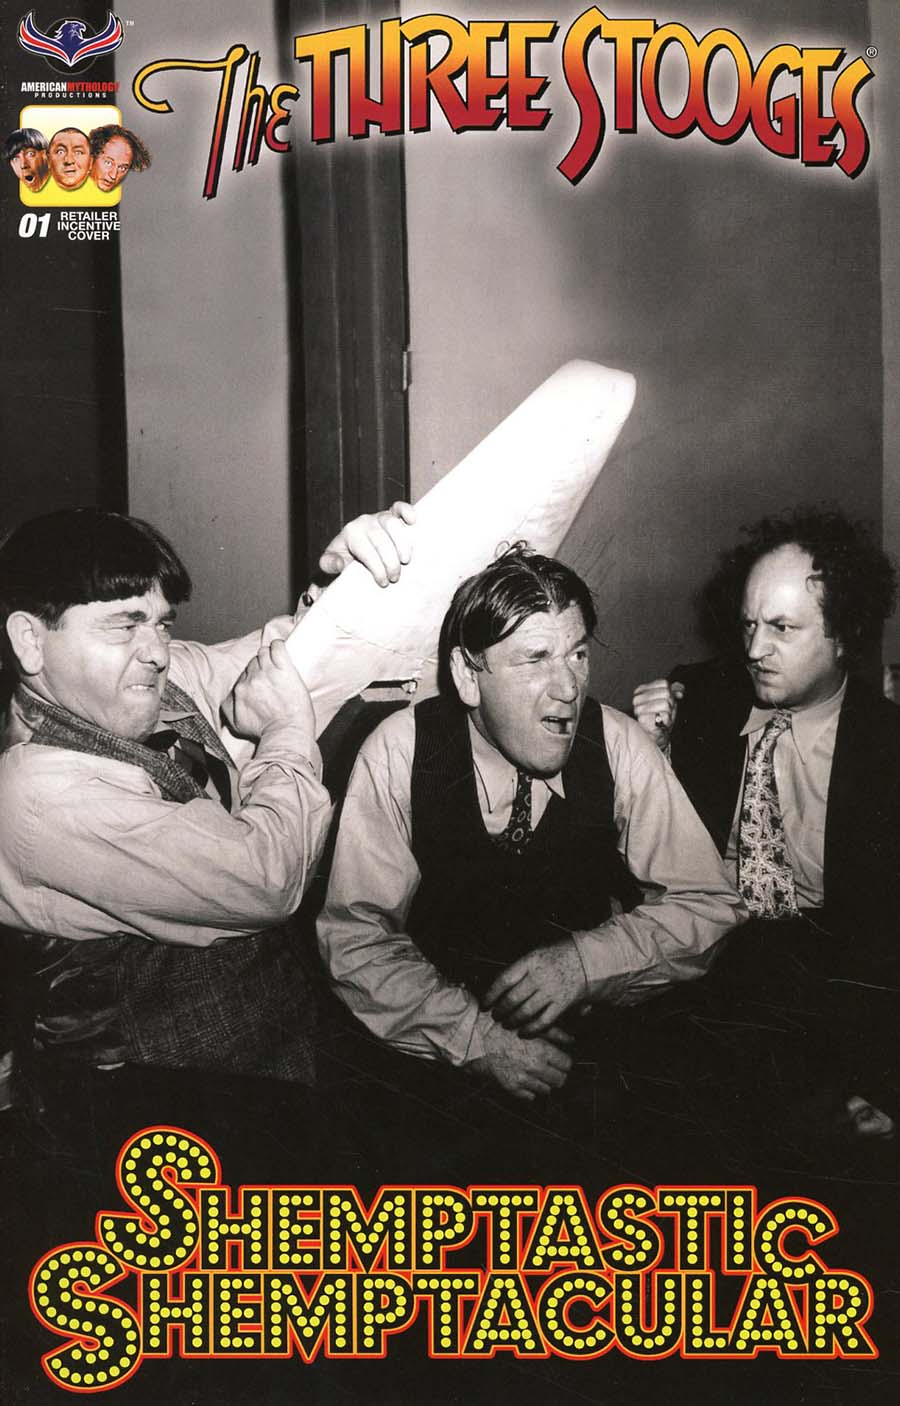 Three Stooges Shemptastic Shemptacular Special Cover D Incentive Black & White Photo Variant Cover